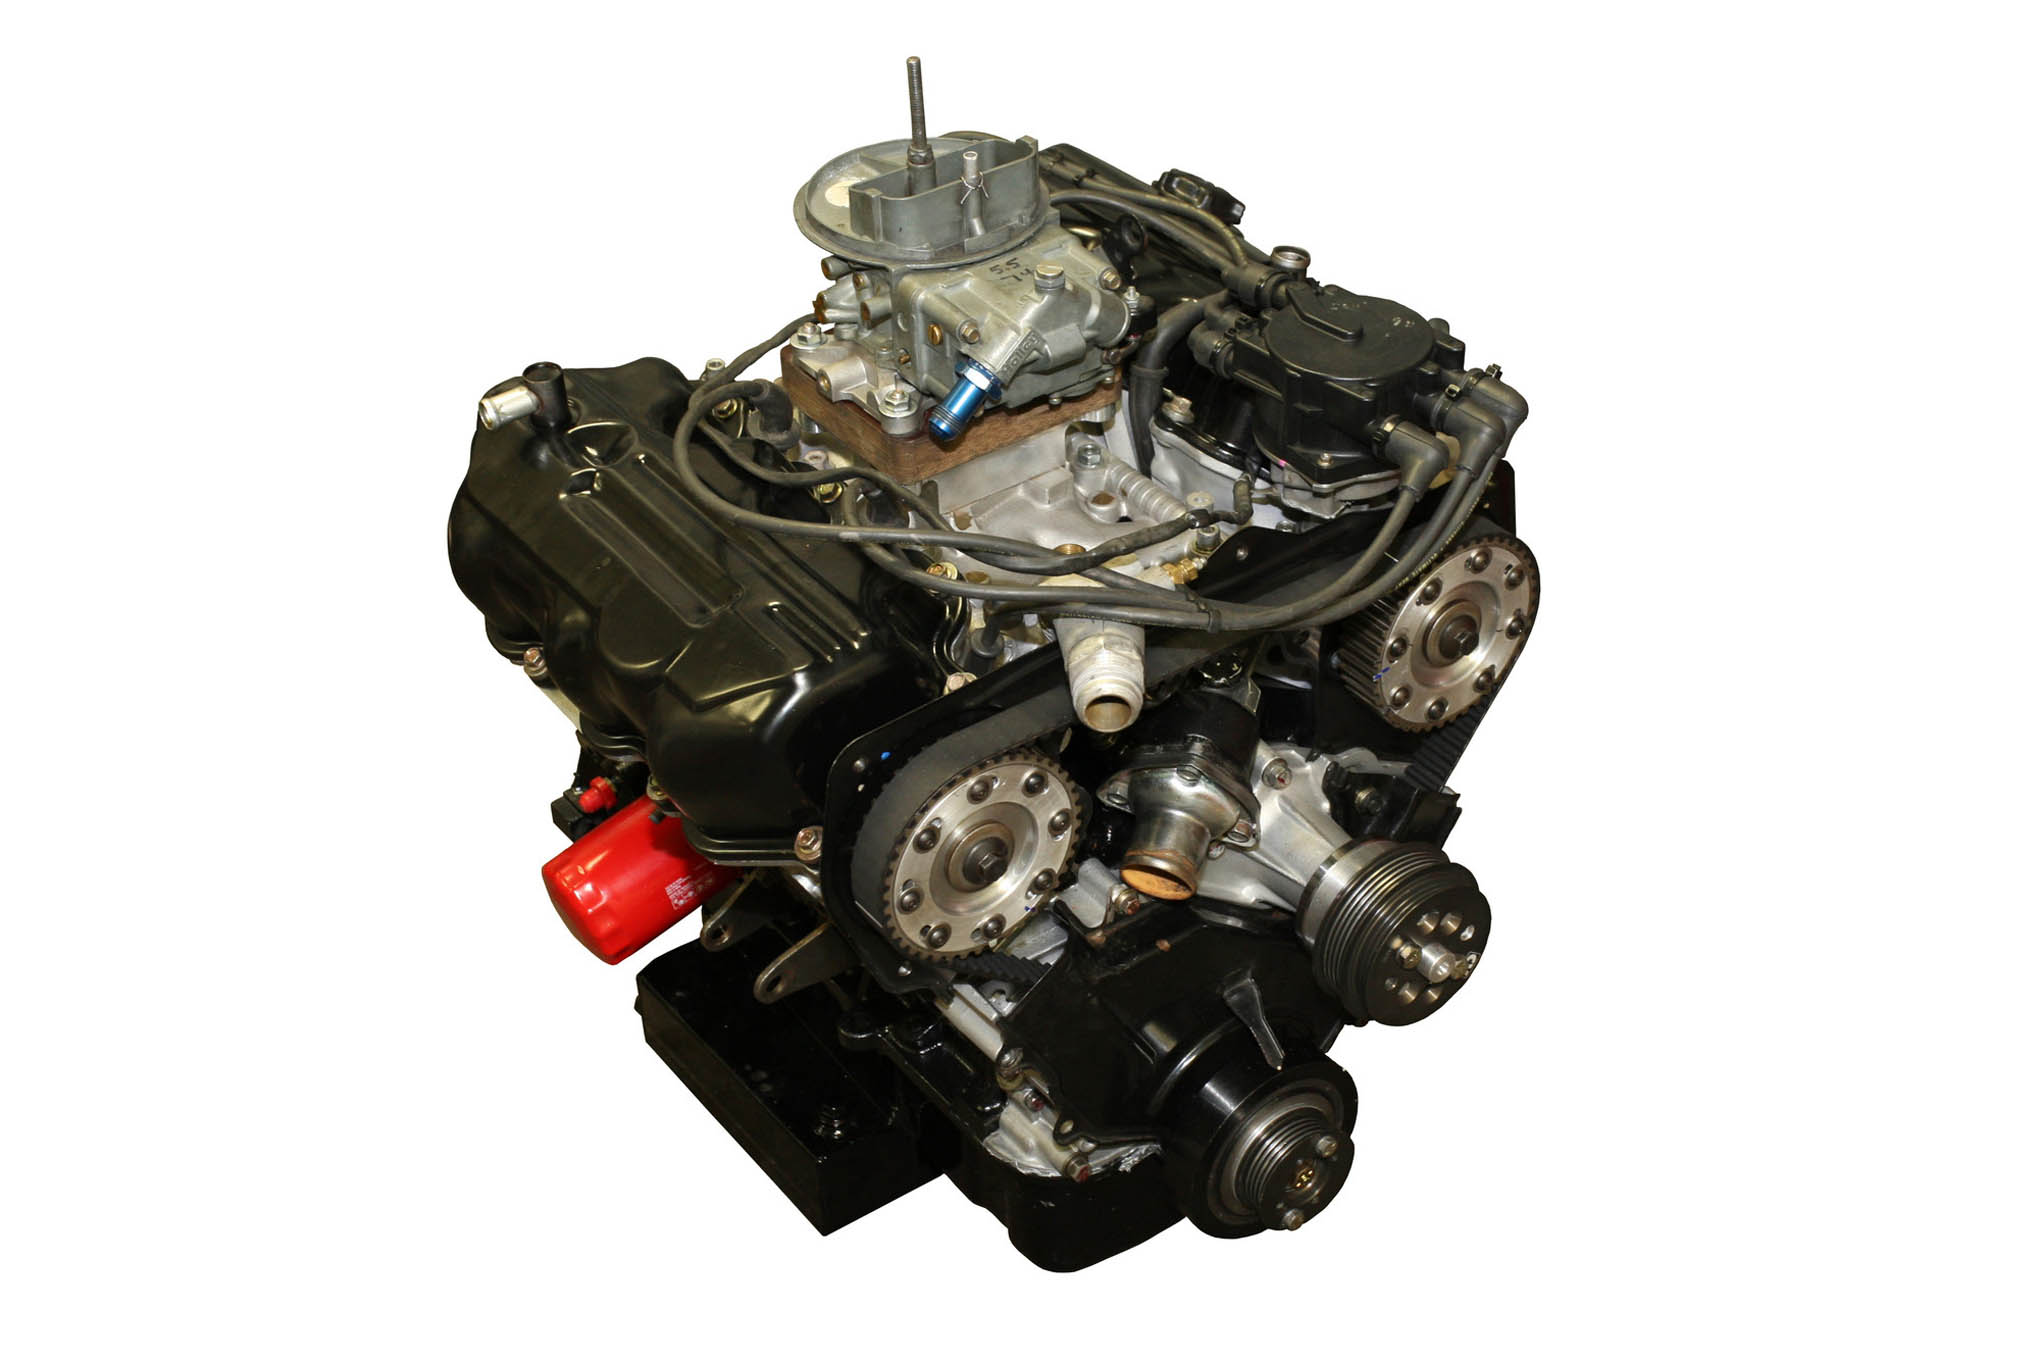 """It certainly doesn't look like your typical race engine, but this V6 Nissan--yes, we said """"Nissan""""--engine is just the type of outside-the-box thinking we need for low-cost, entry-level racing."""